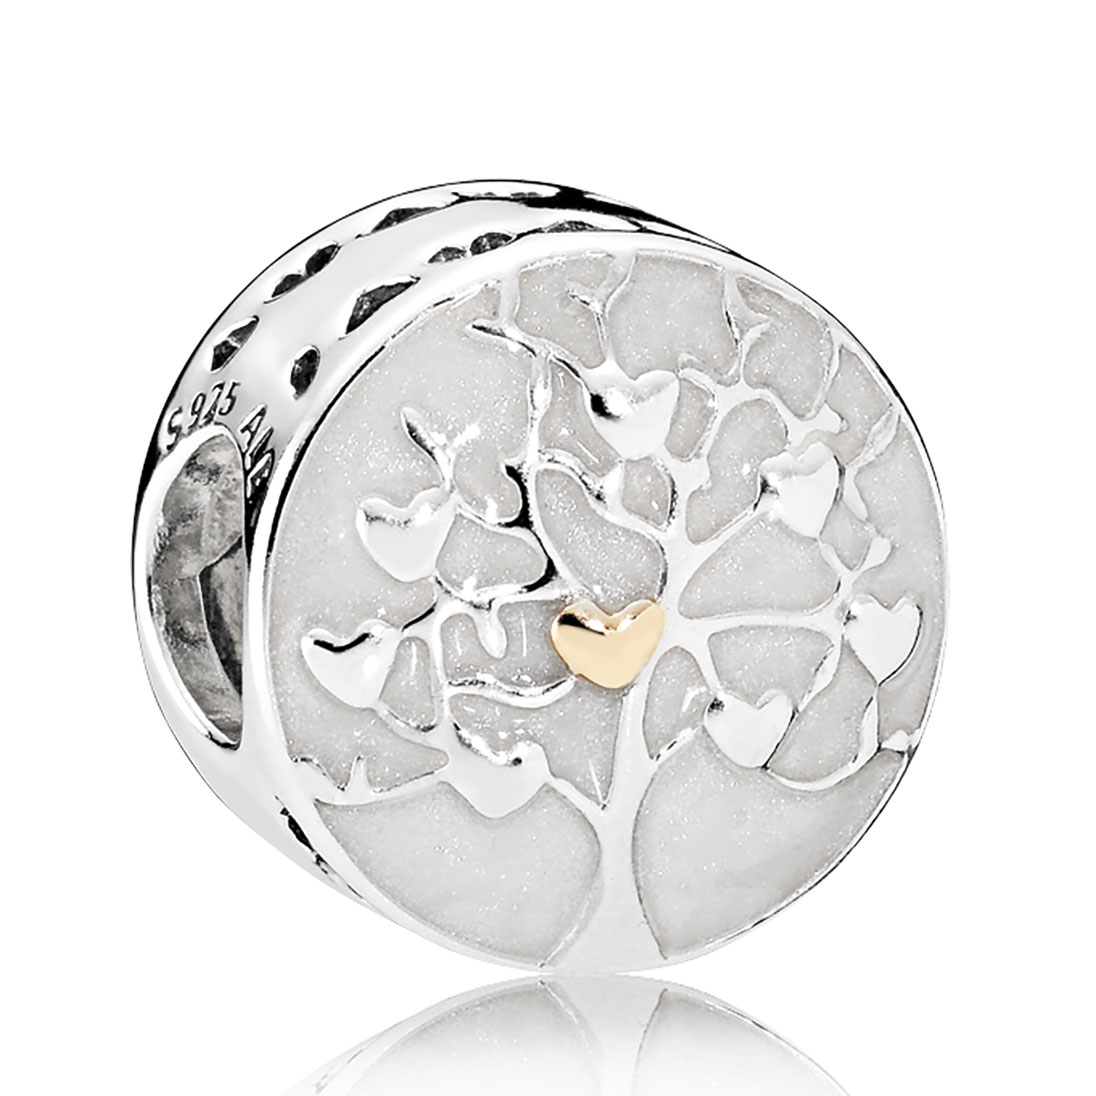 768164bcc PANDORA Sterling Silver & 14KT Gold Charms - Mypanjewelry.com